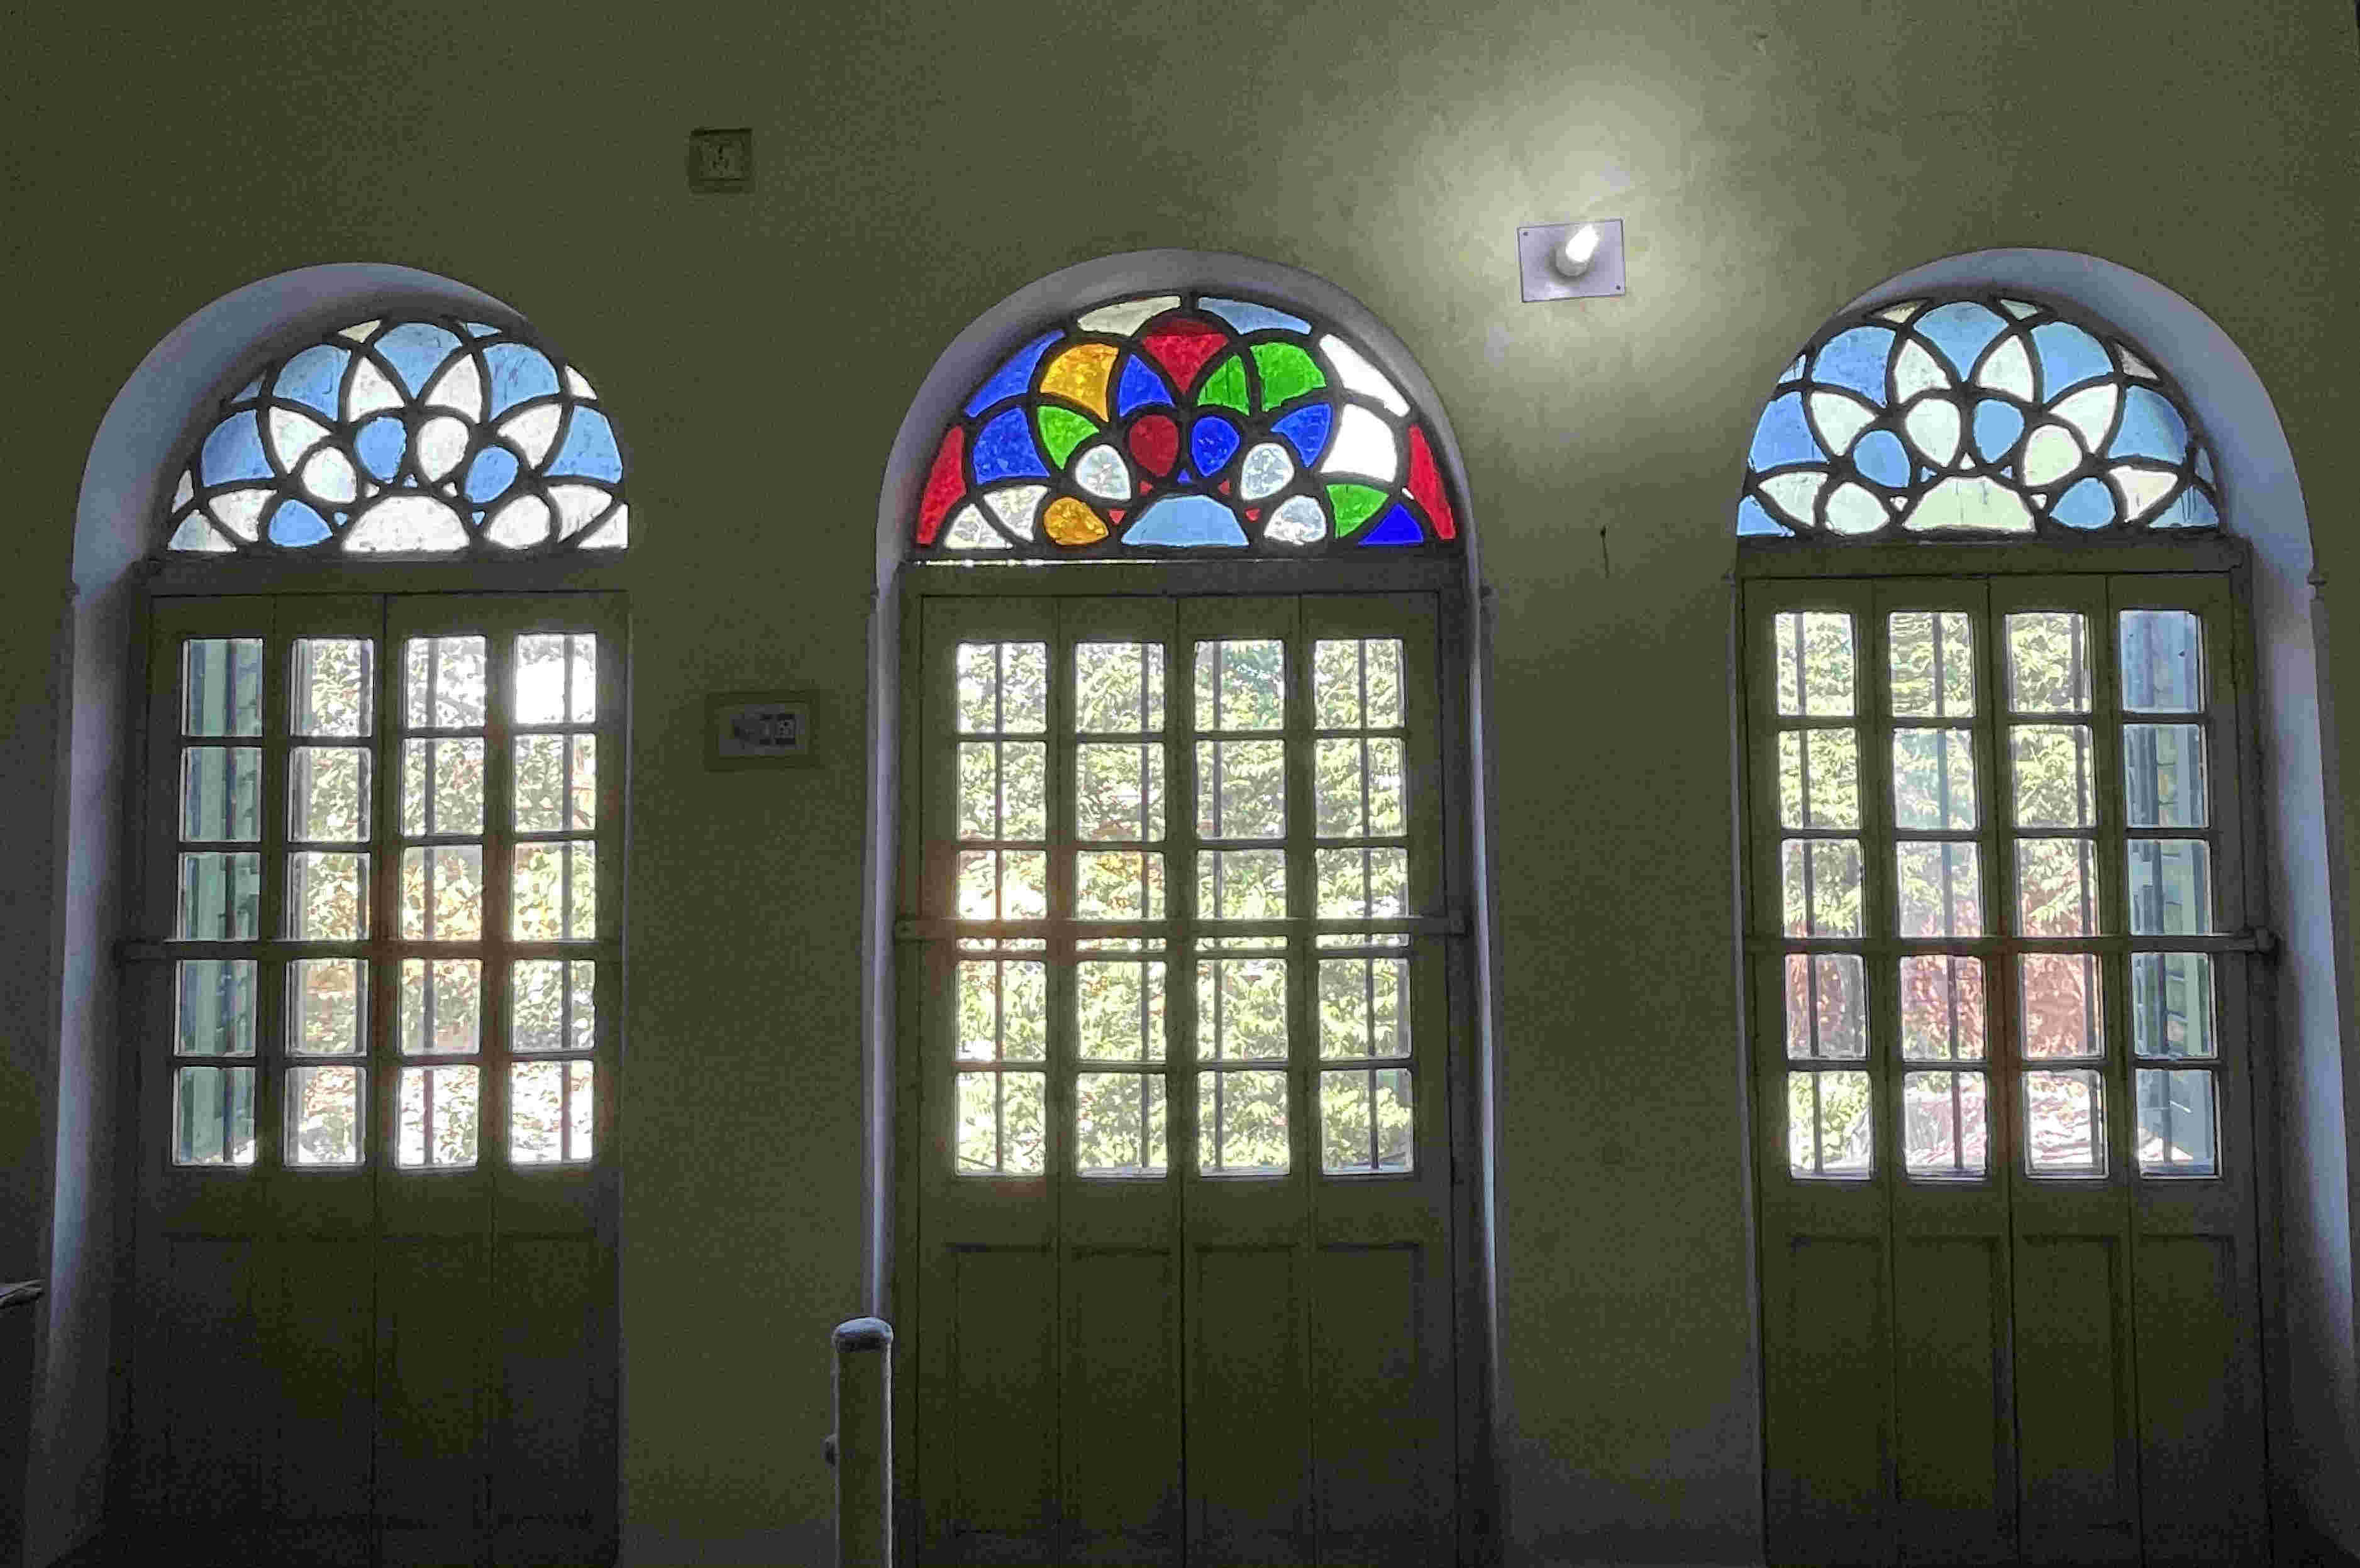 The colours on the stained glass windows are not oversaturated.